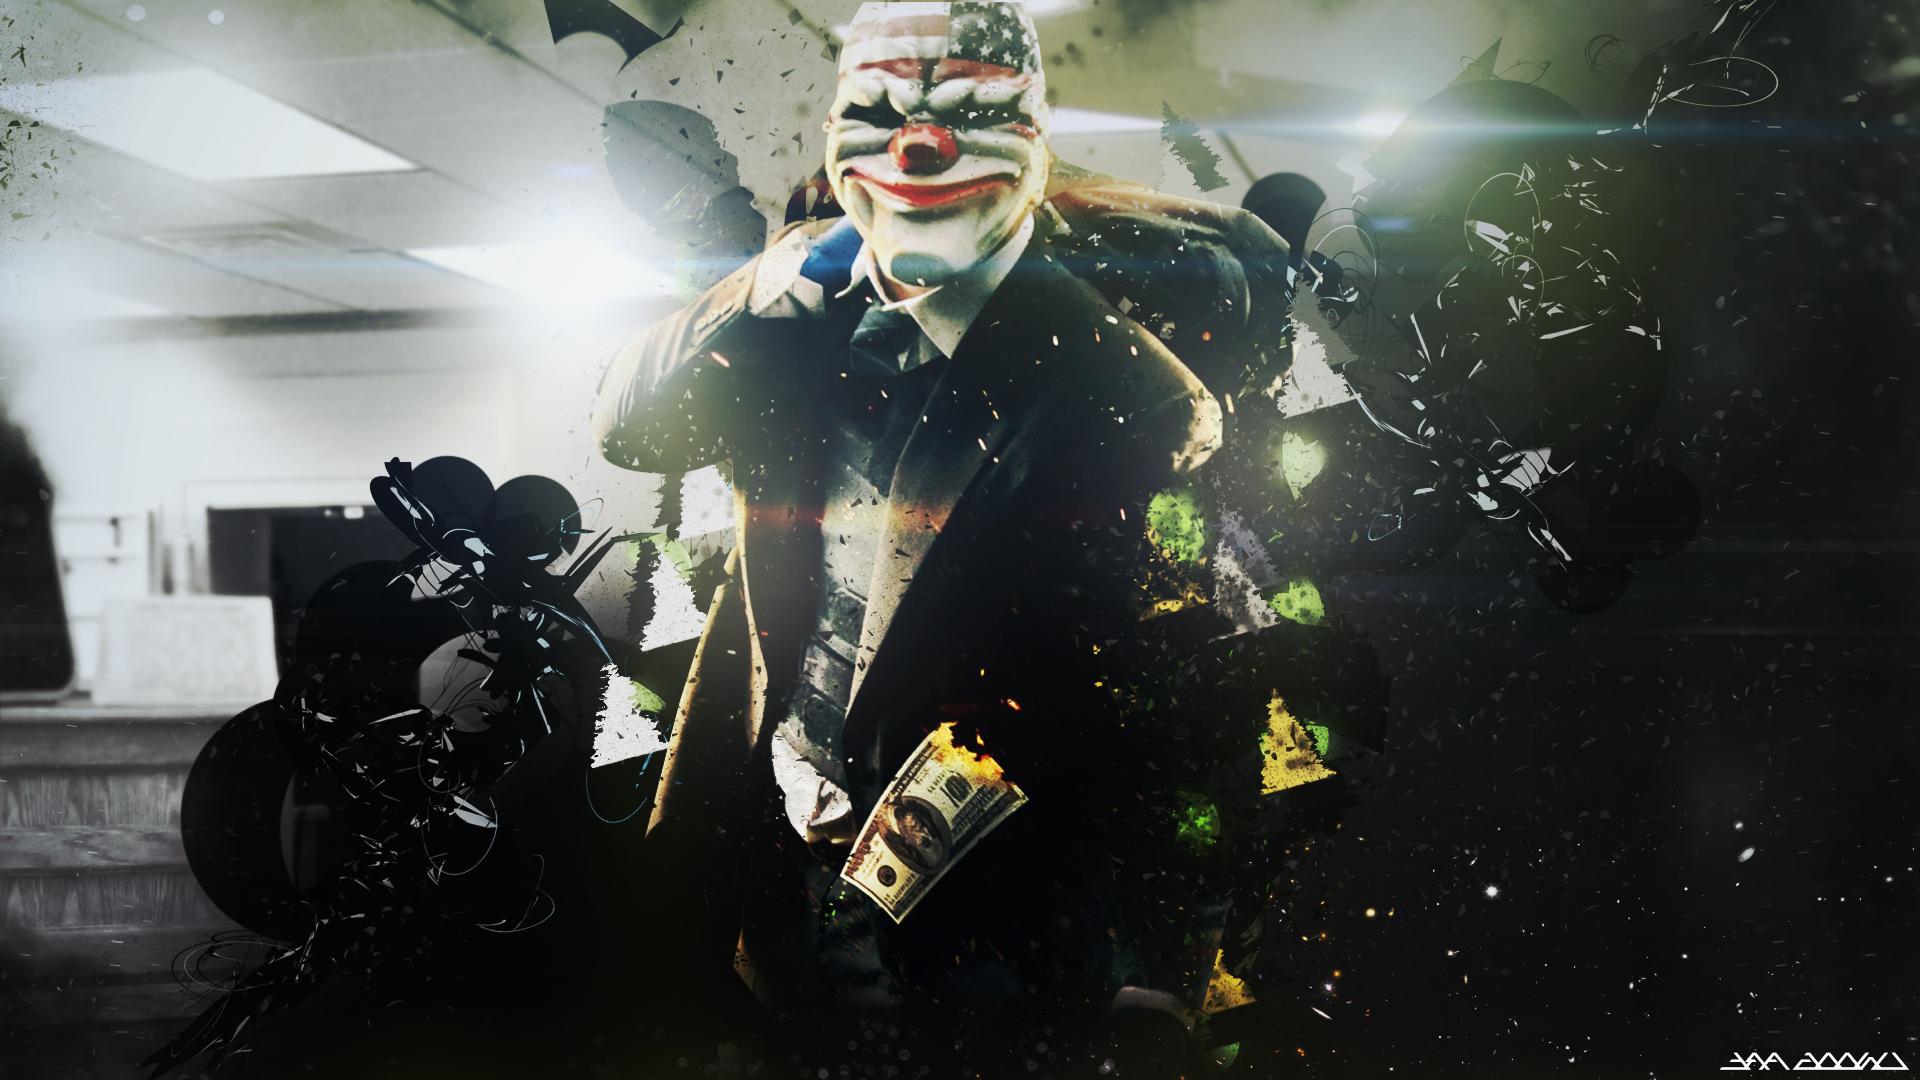 Payday Wallpapers HDQ Cover 1920x1080